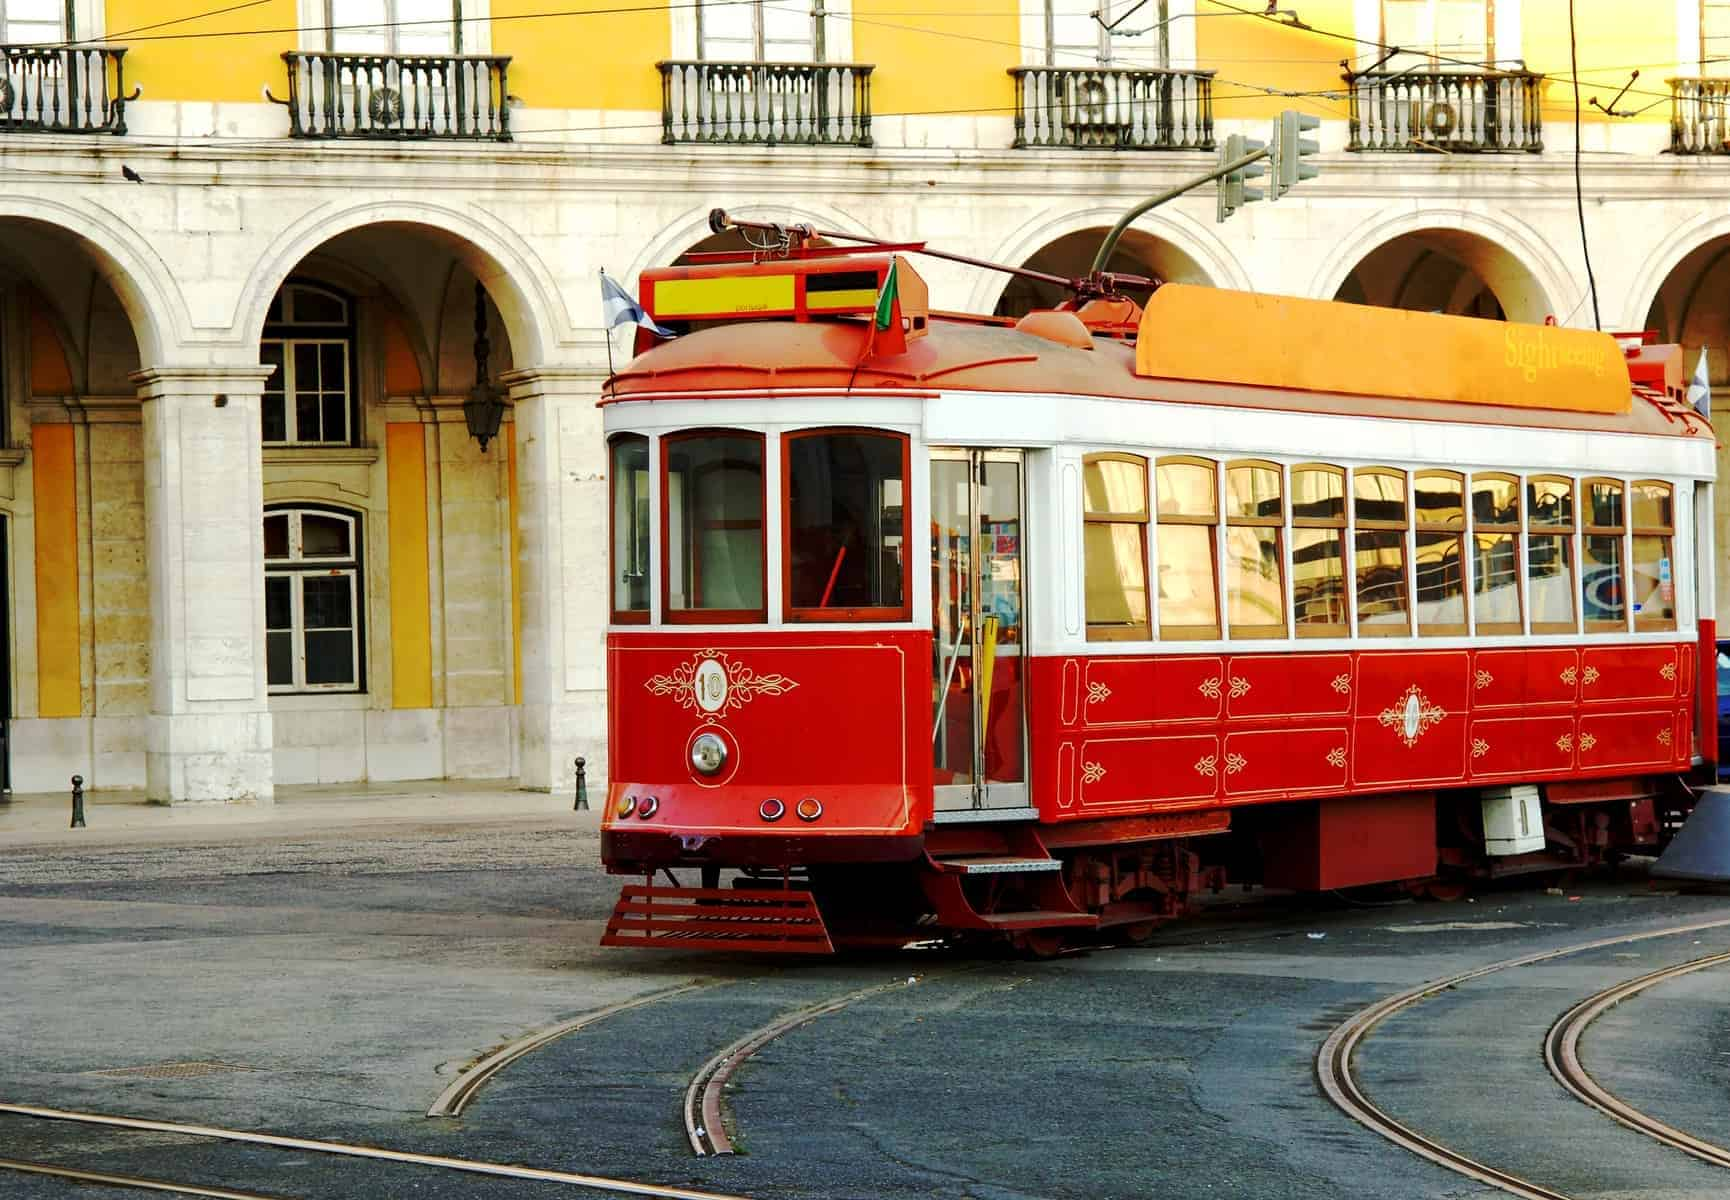 Portugal Lisbon historic part of town, tramway